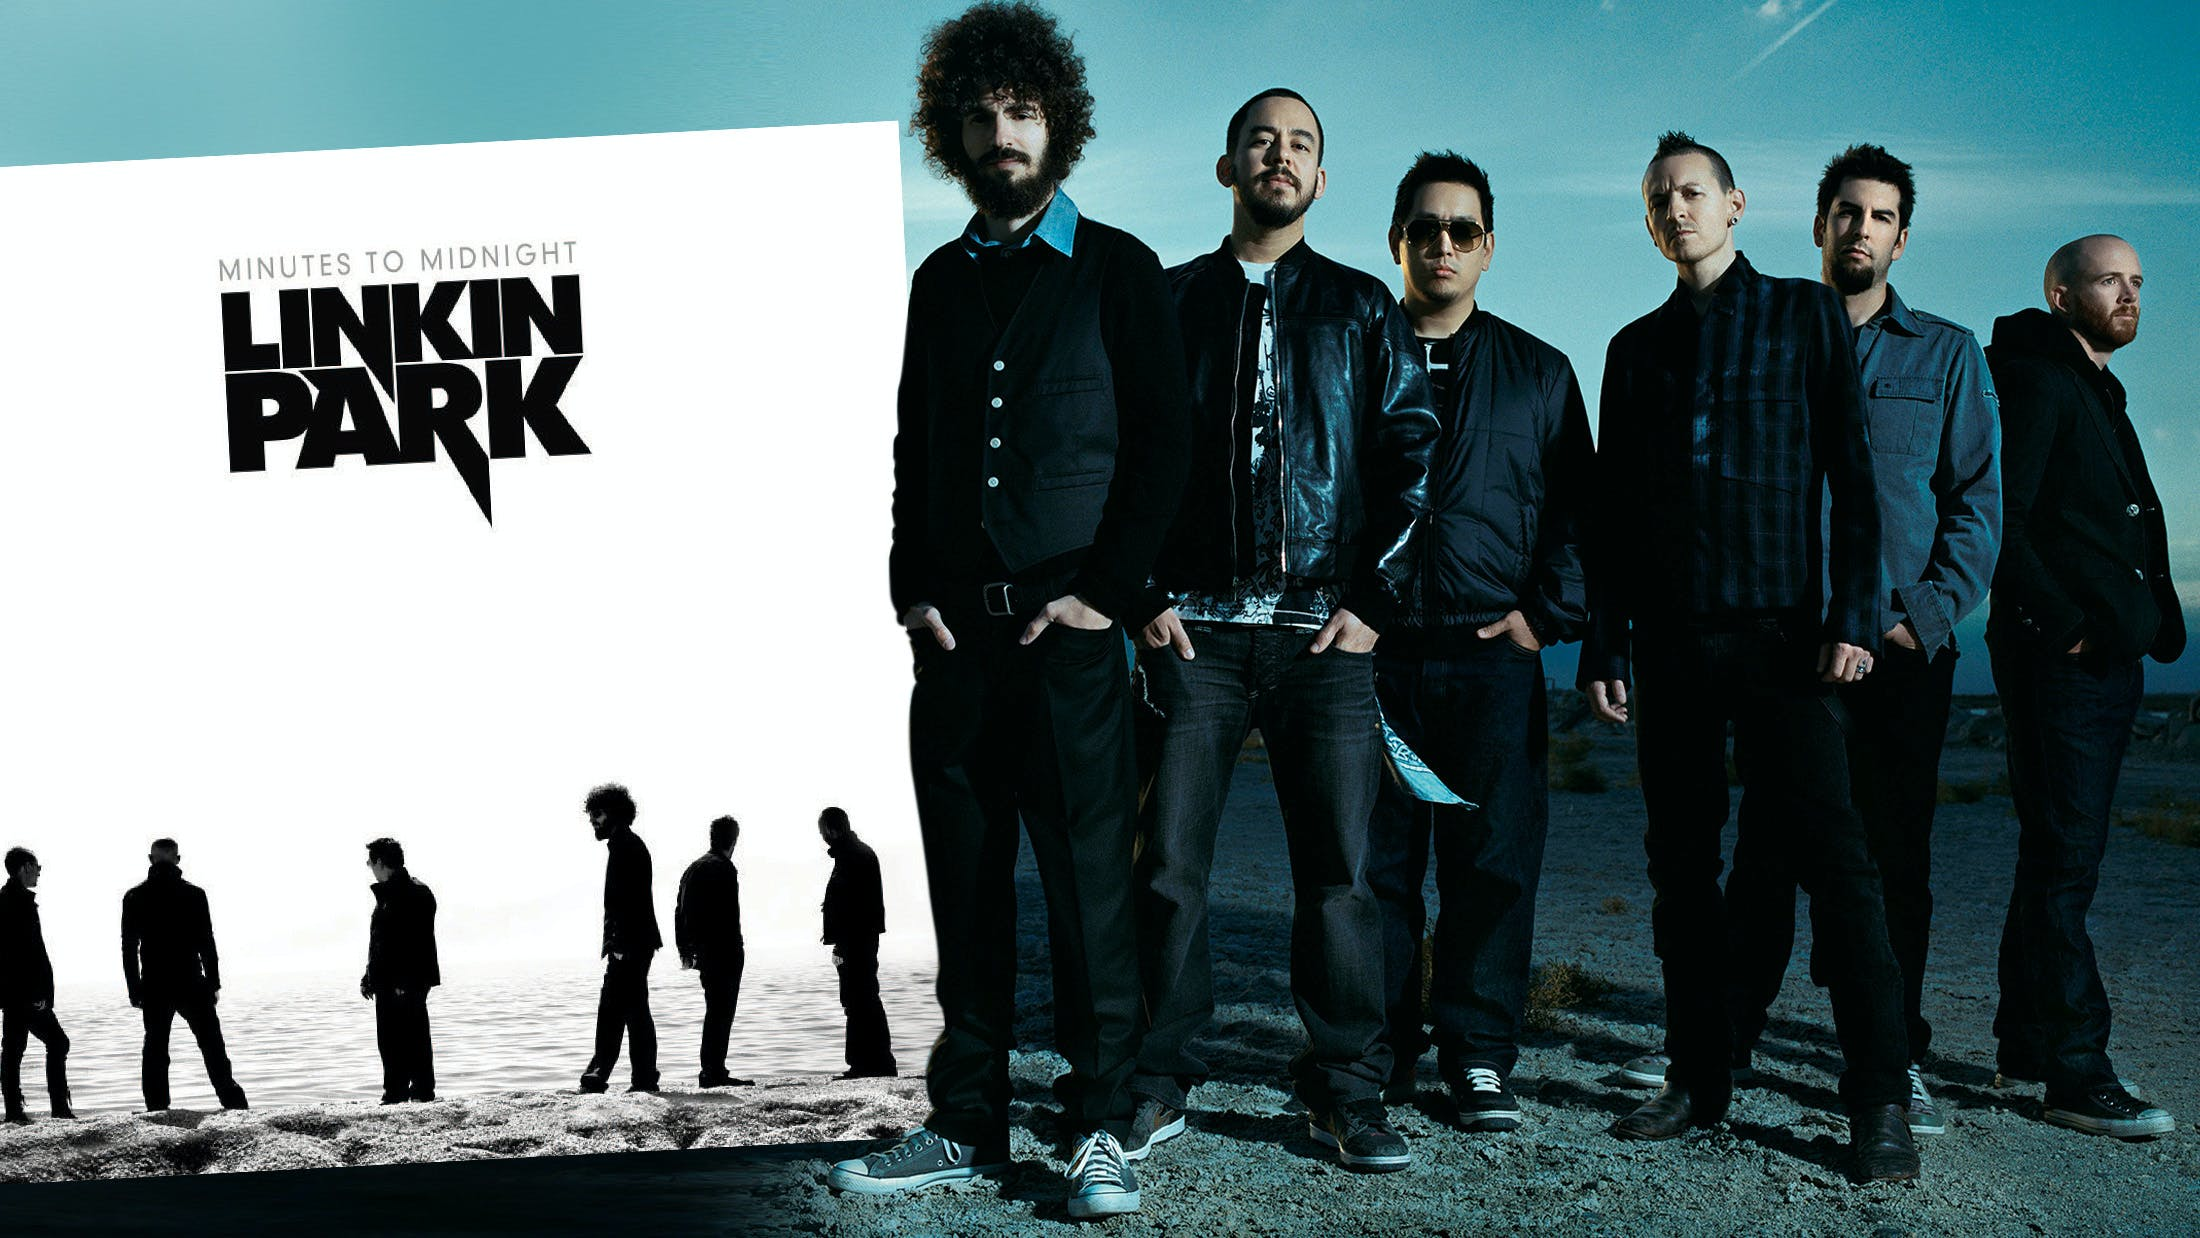 Linkin Park: The Inside Story Of Minutes To Midnight